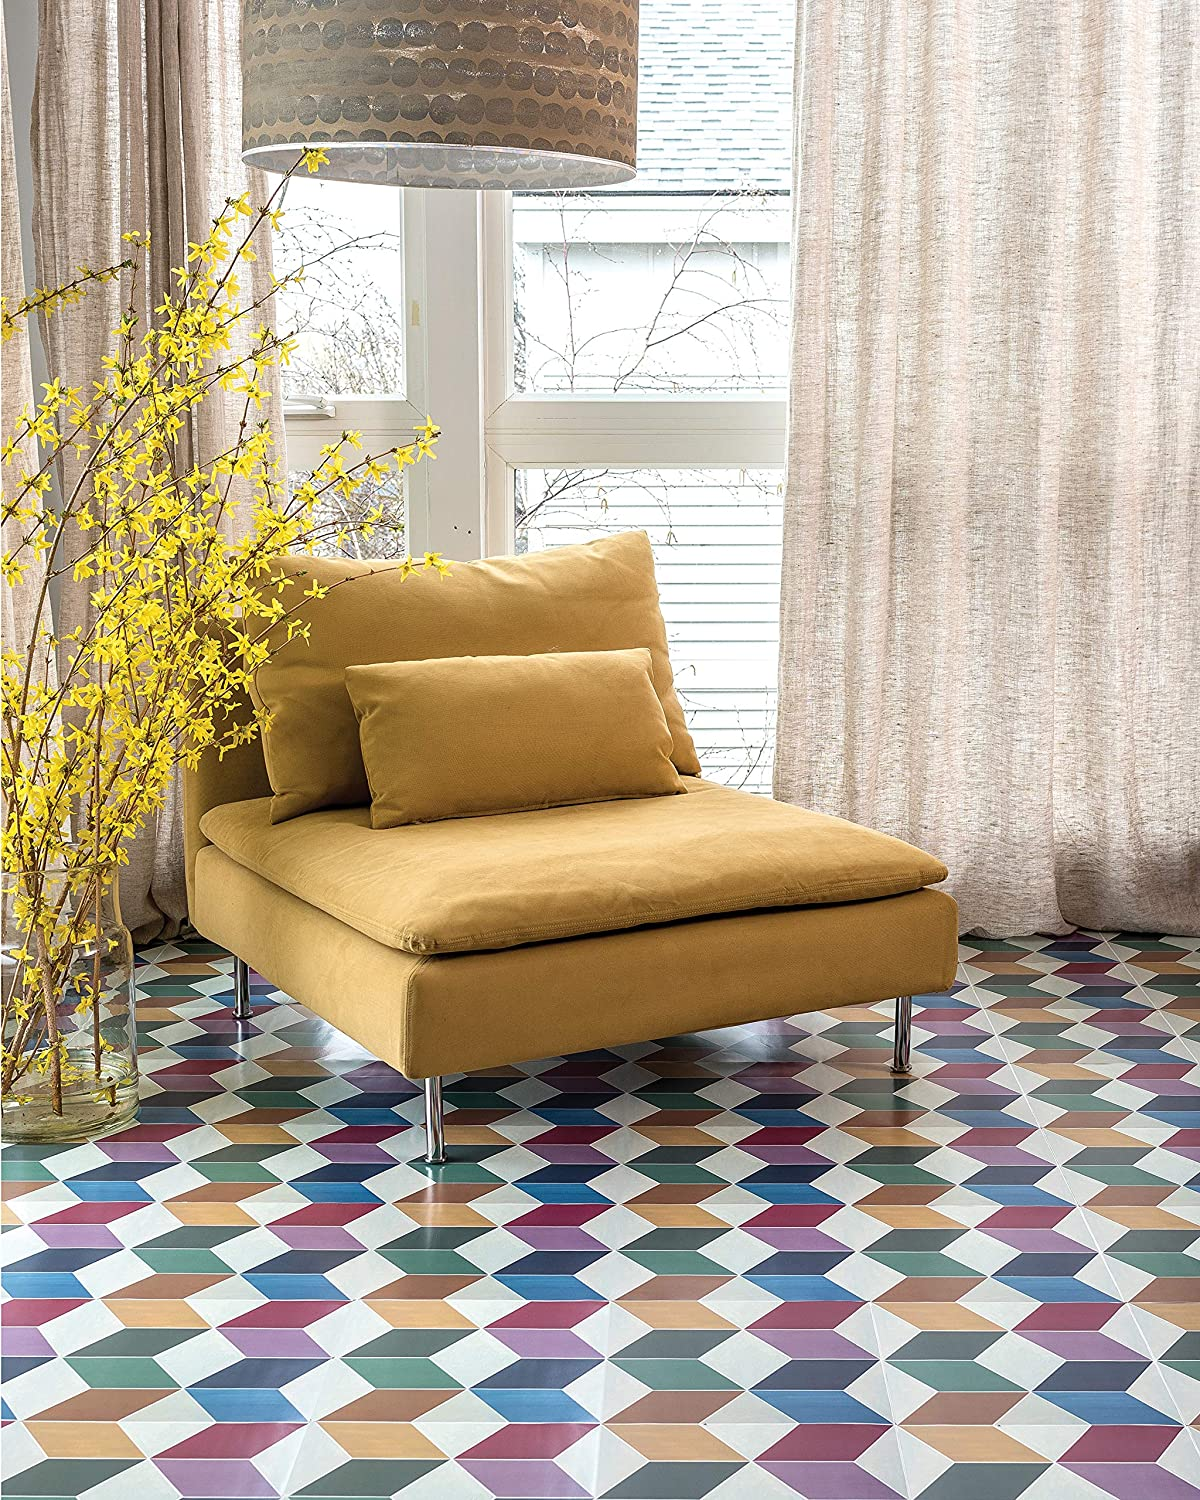 """Set of 6-12/""""x12/"""" Tiles Kittrich Mexican Con-Tact Brand Adorn FLRA-12N025-06 Adhesive Decorative and Removable Vinyl Floor"""